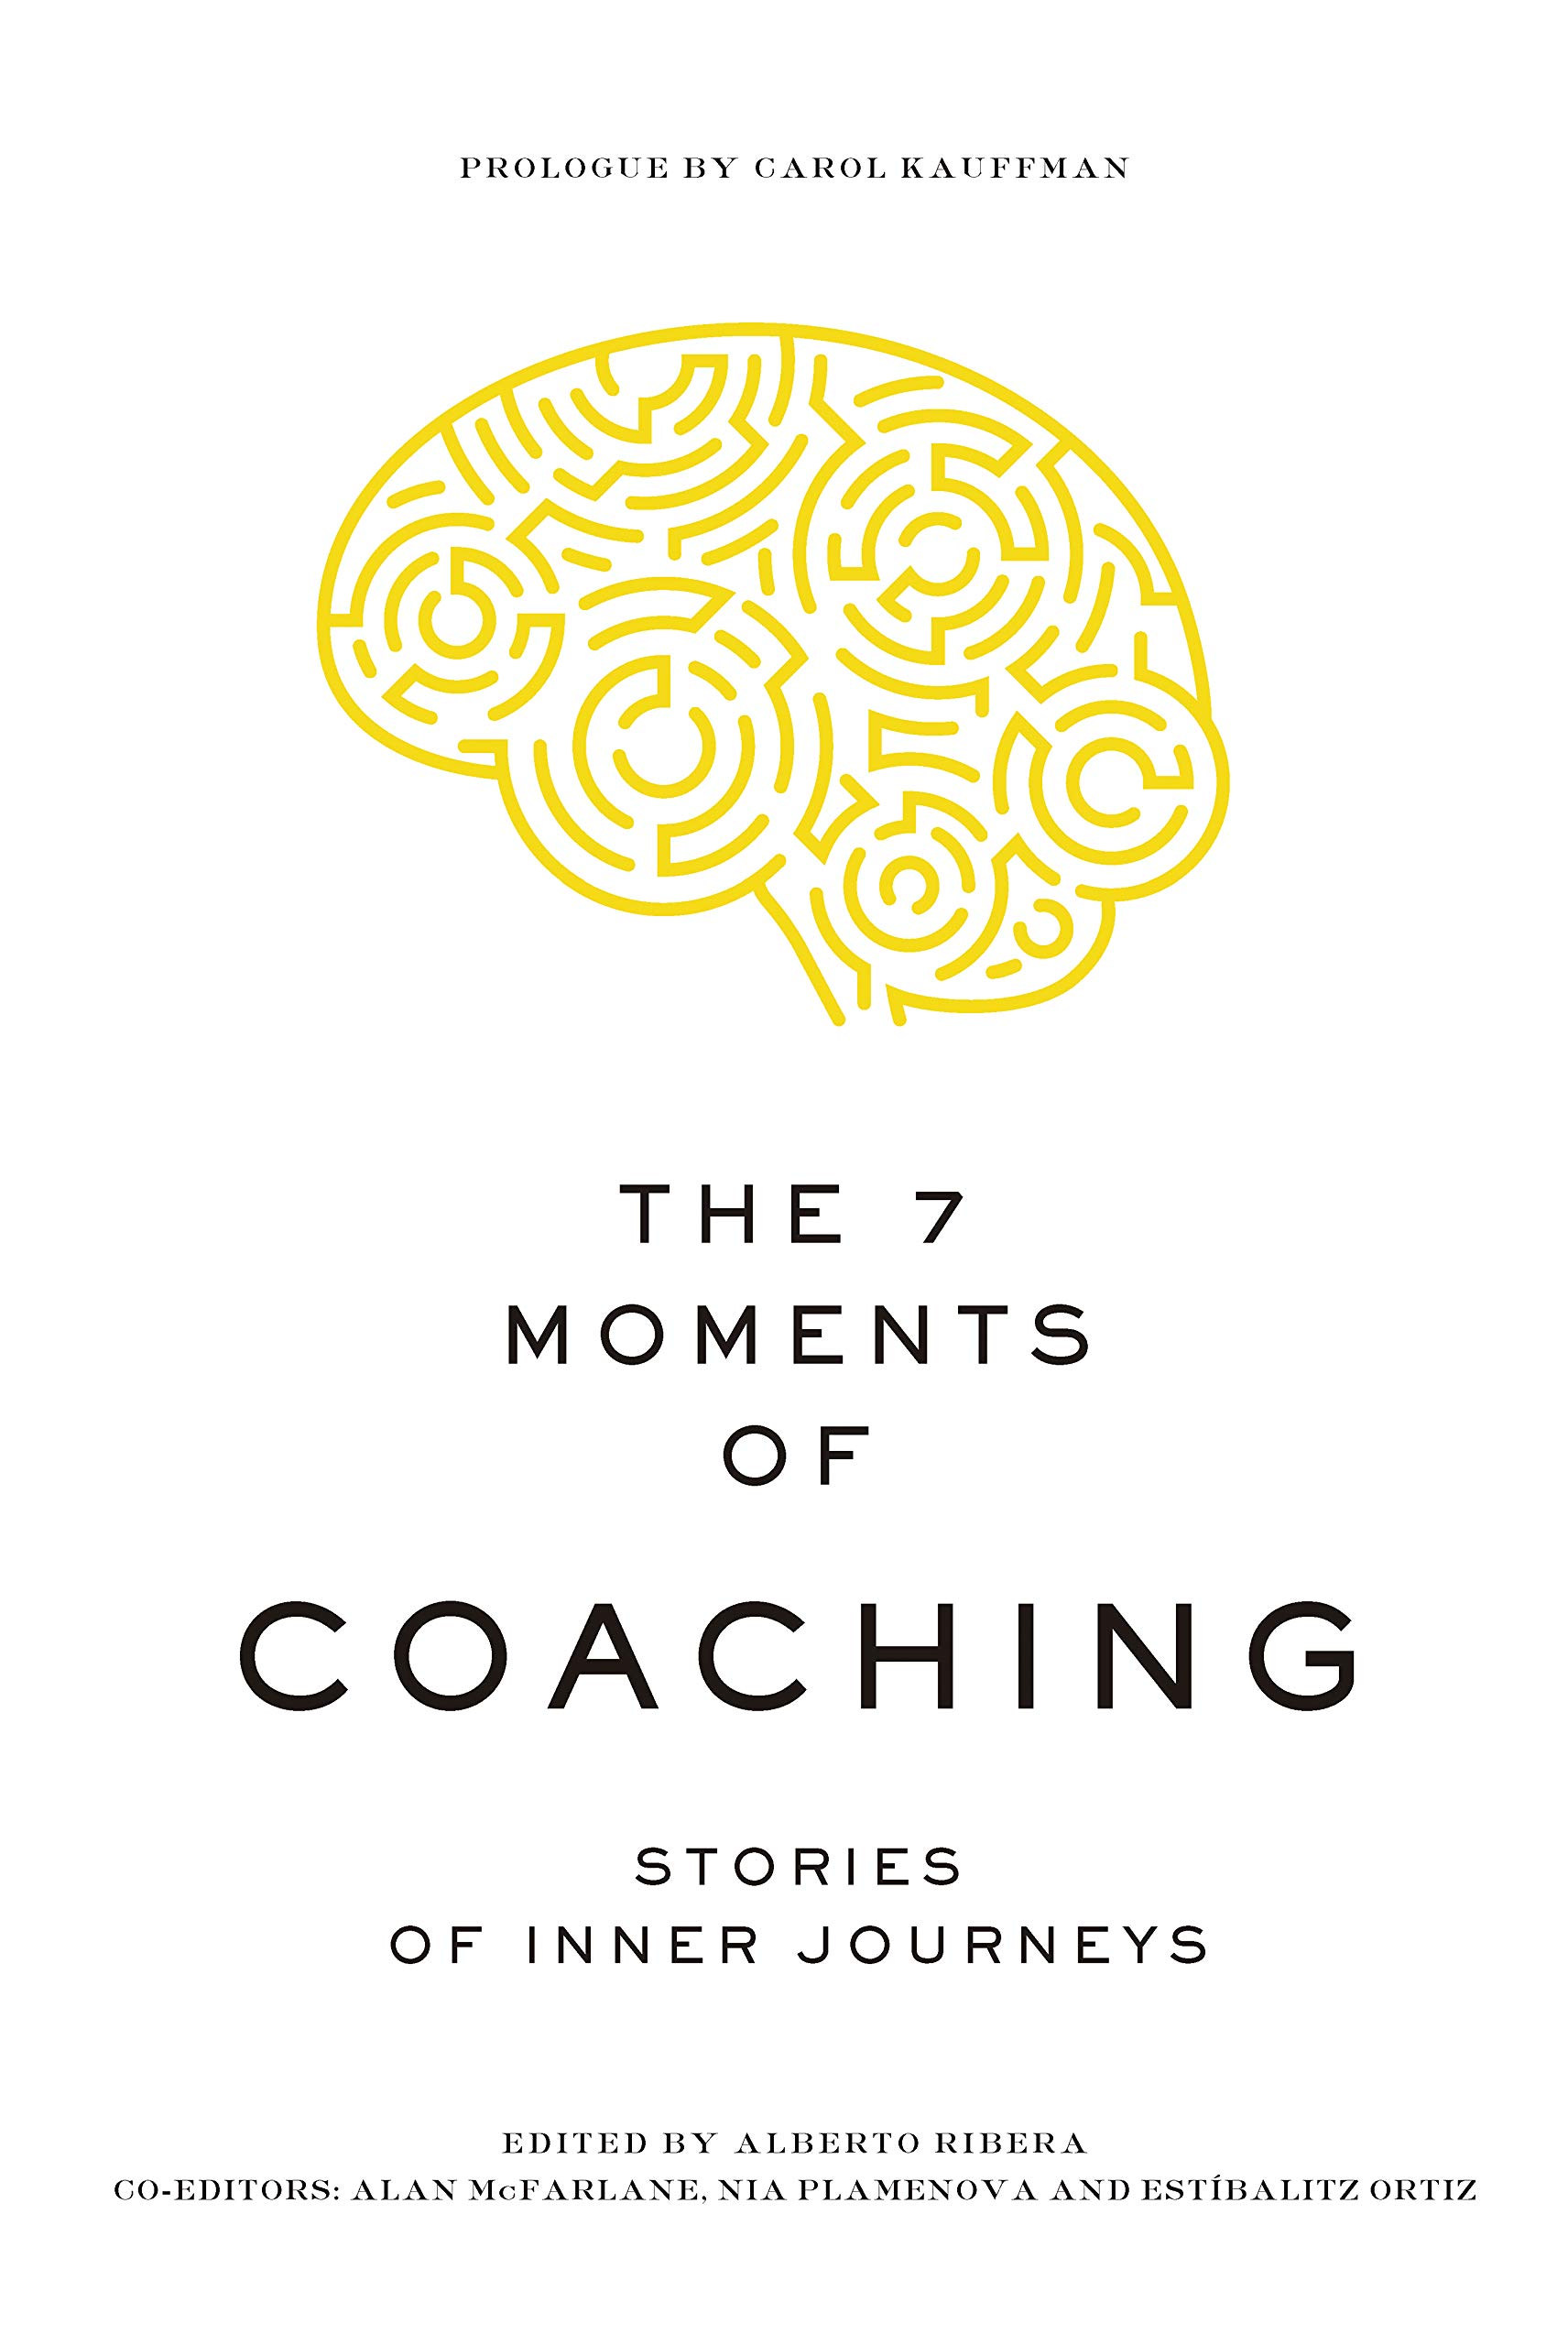 The 7 Moments of Coaching: Stories of Inner Journeys